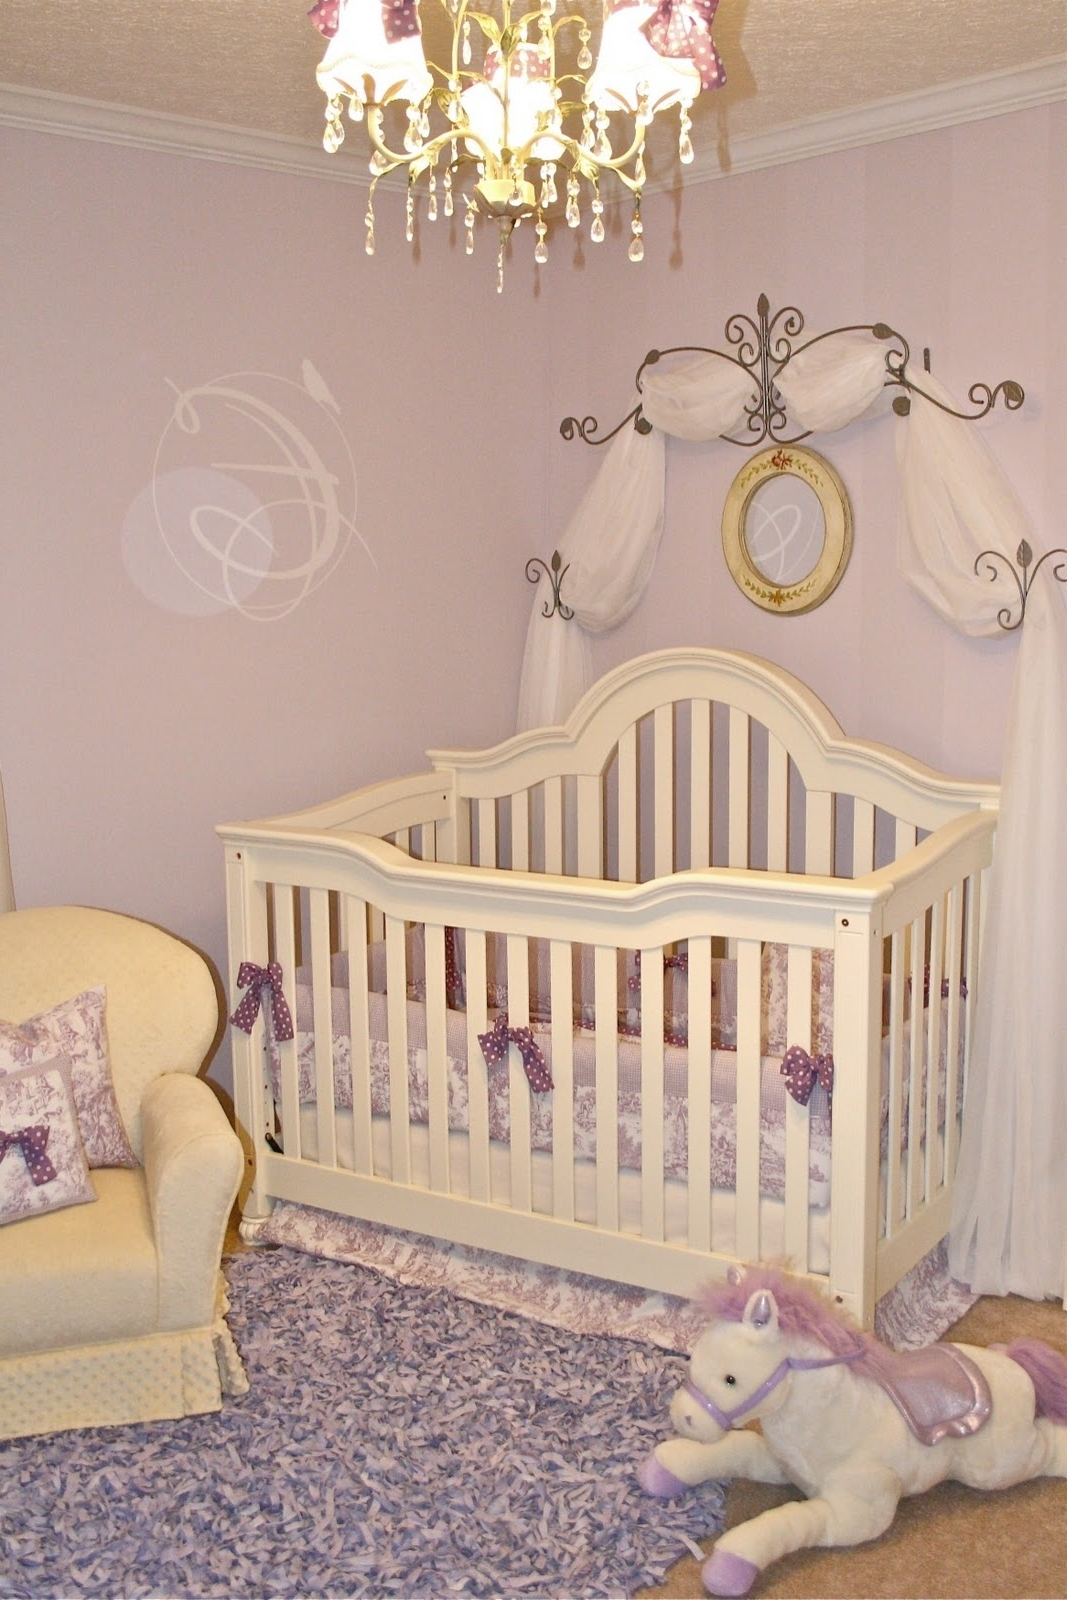 2018 Chandeliers For Baby Girl Room With Regard To Luxury Baby Girl Room Chandelier For Your Budget Home Interior (View 7 of 15)